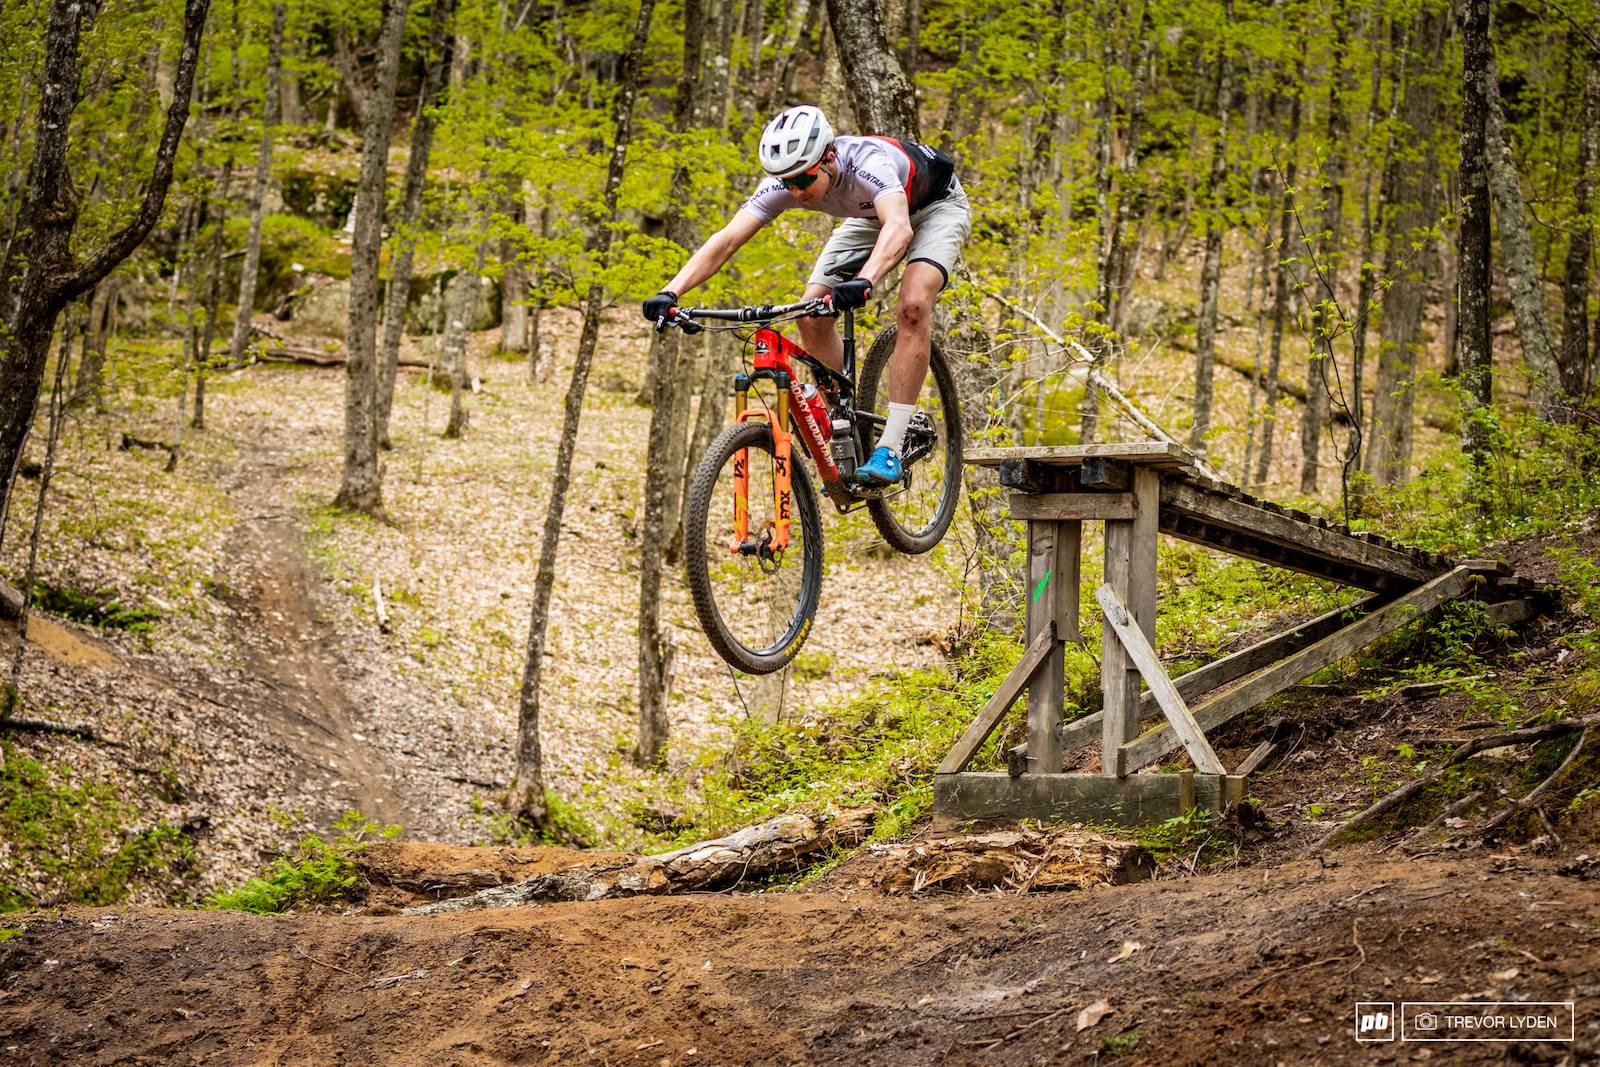 While there are countless miles of singletrack there s also a small freeride zone to work on your trick progression.